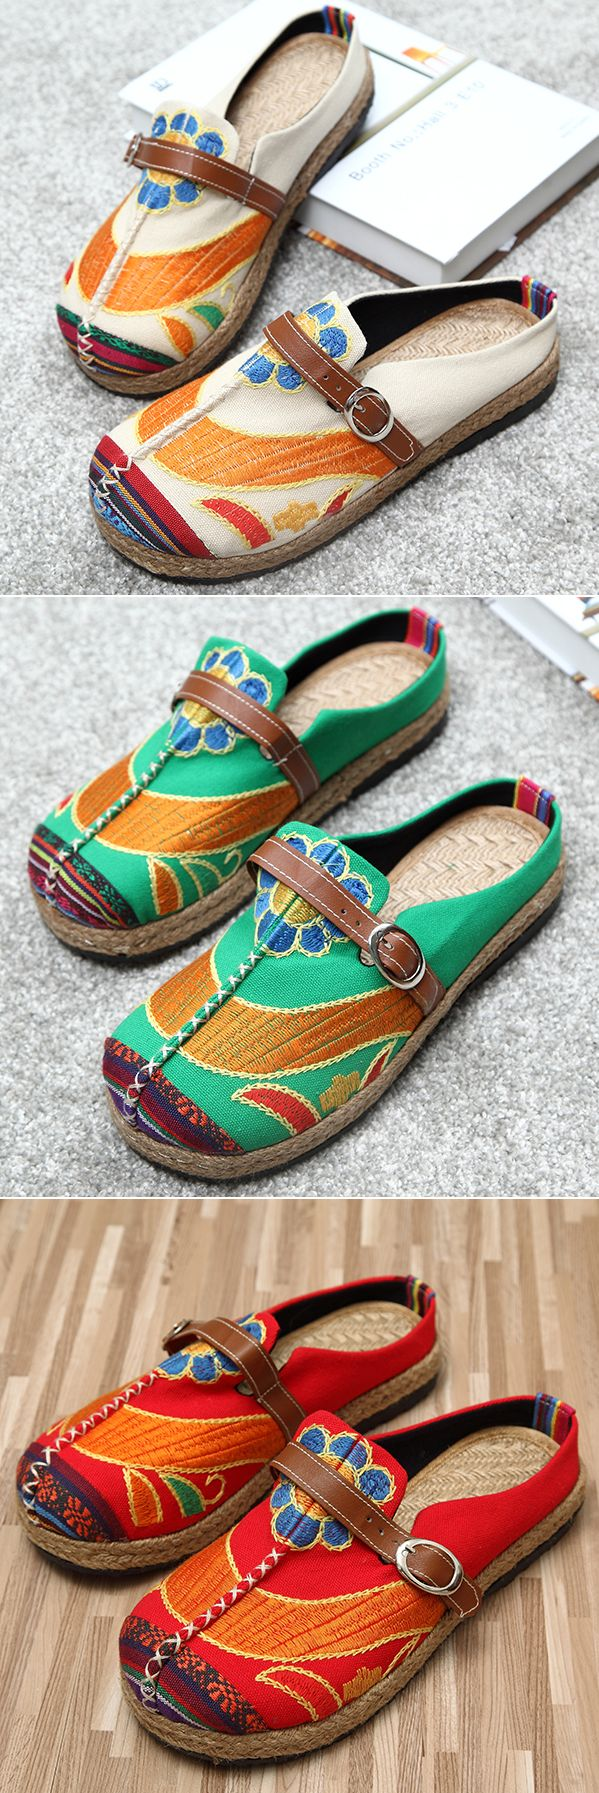 47% OFF! US$19.32 Colorful Embroidered Buckle Folkways Backless Loafers For Women. SHOP NOW!